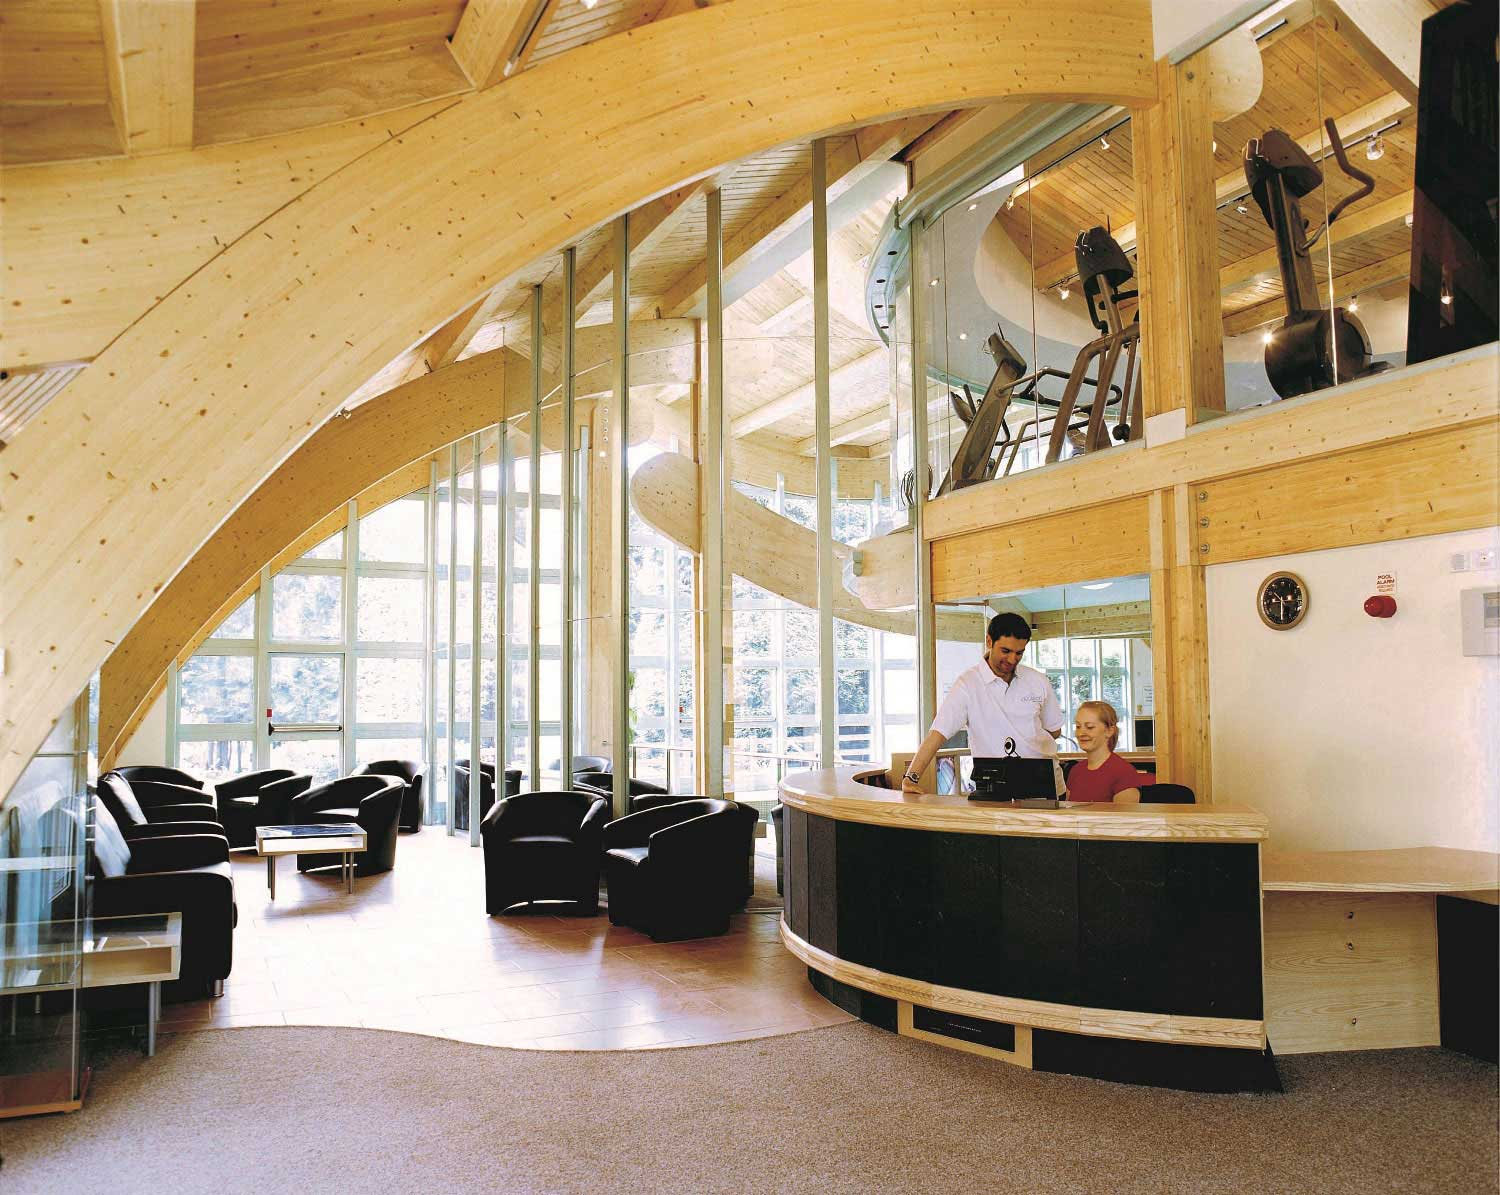 Evolution reception area treated with Vacsol Azure timber preservative